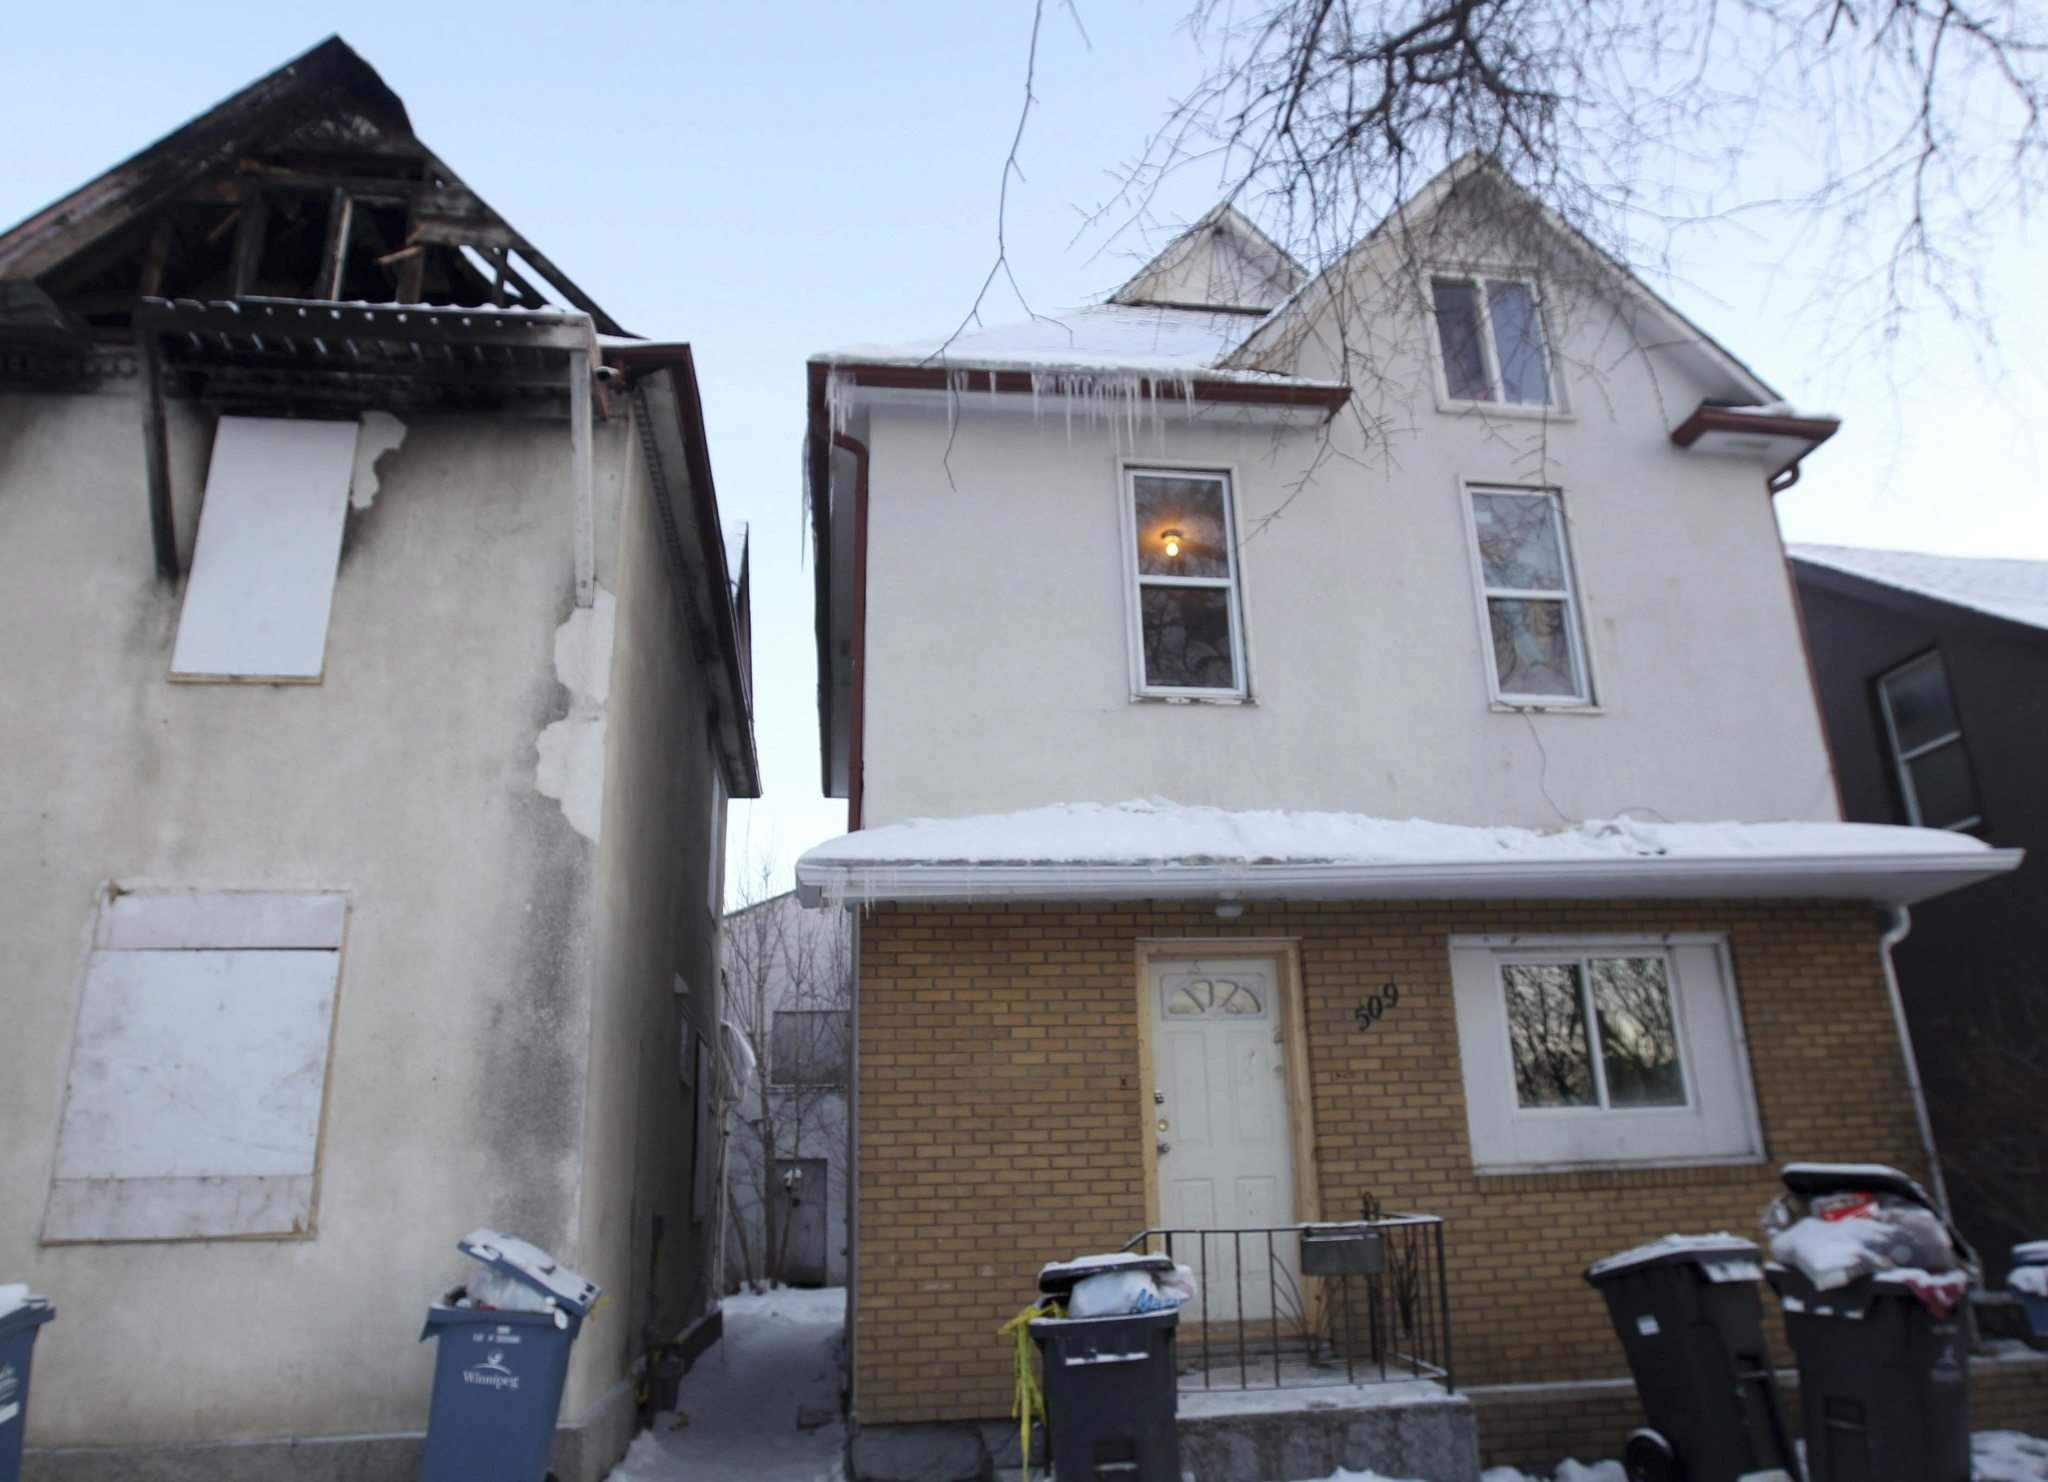 JOE BRYKSA / WINNIPEG FREE PRESS files</p><p>Cynthia Huntinghawk was killed at this William Avenue house in 2016. Sisters Candice and Vanessa Nepinak were sentenced Wednesday.</p>